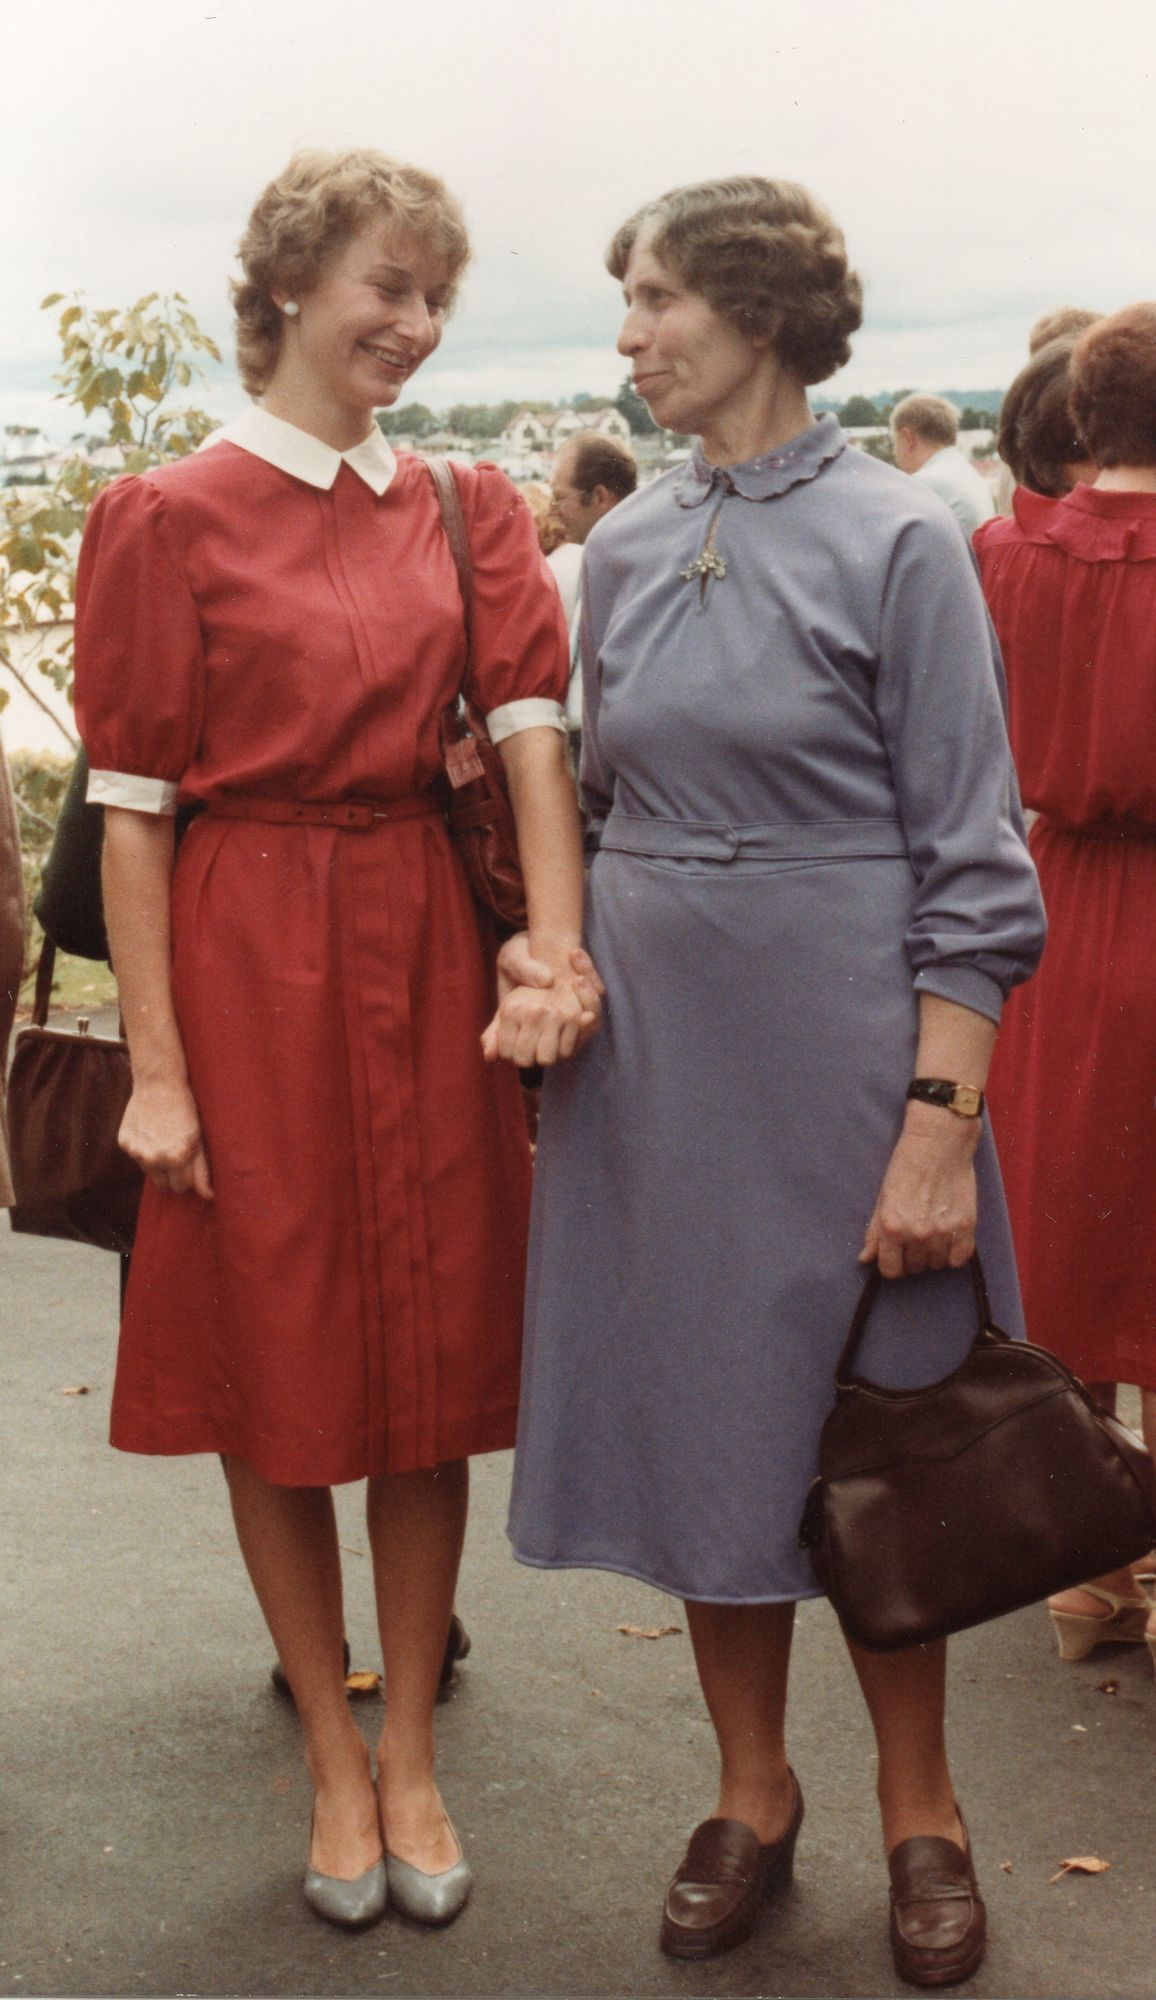 A coloured  photograph of Ciocia Julia and Regina standing, holding hands and looking at each other and smiling, both wearing similar,  high-collared dresses. Ciocia Julia's dress is a duck-grey, and she has a handbag and sensible shoes, and Regina's dress is  red with white trimmings. Her shoes are silver.